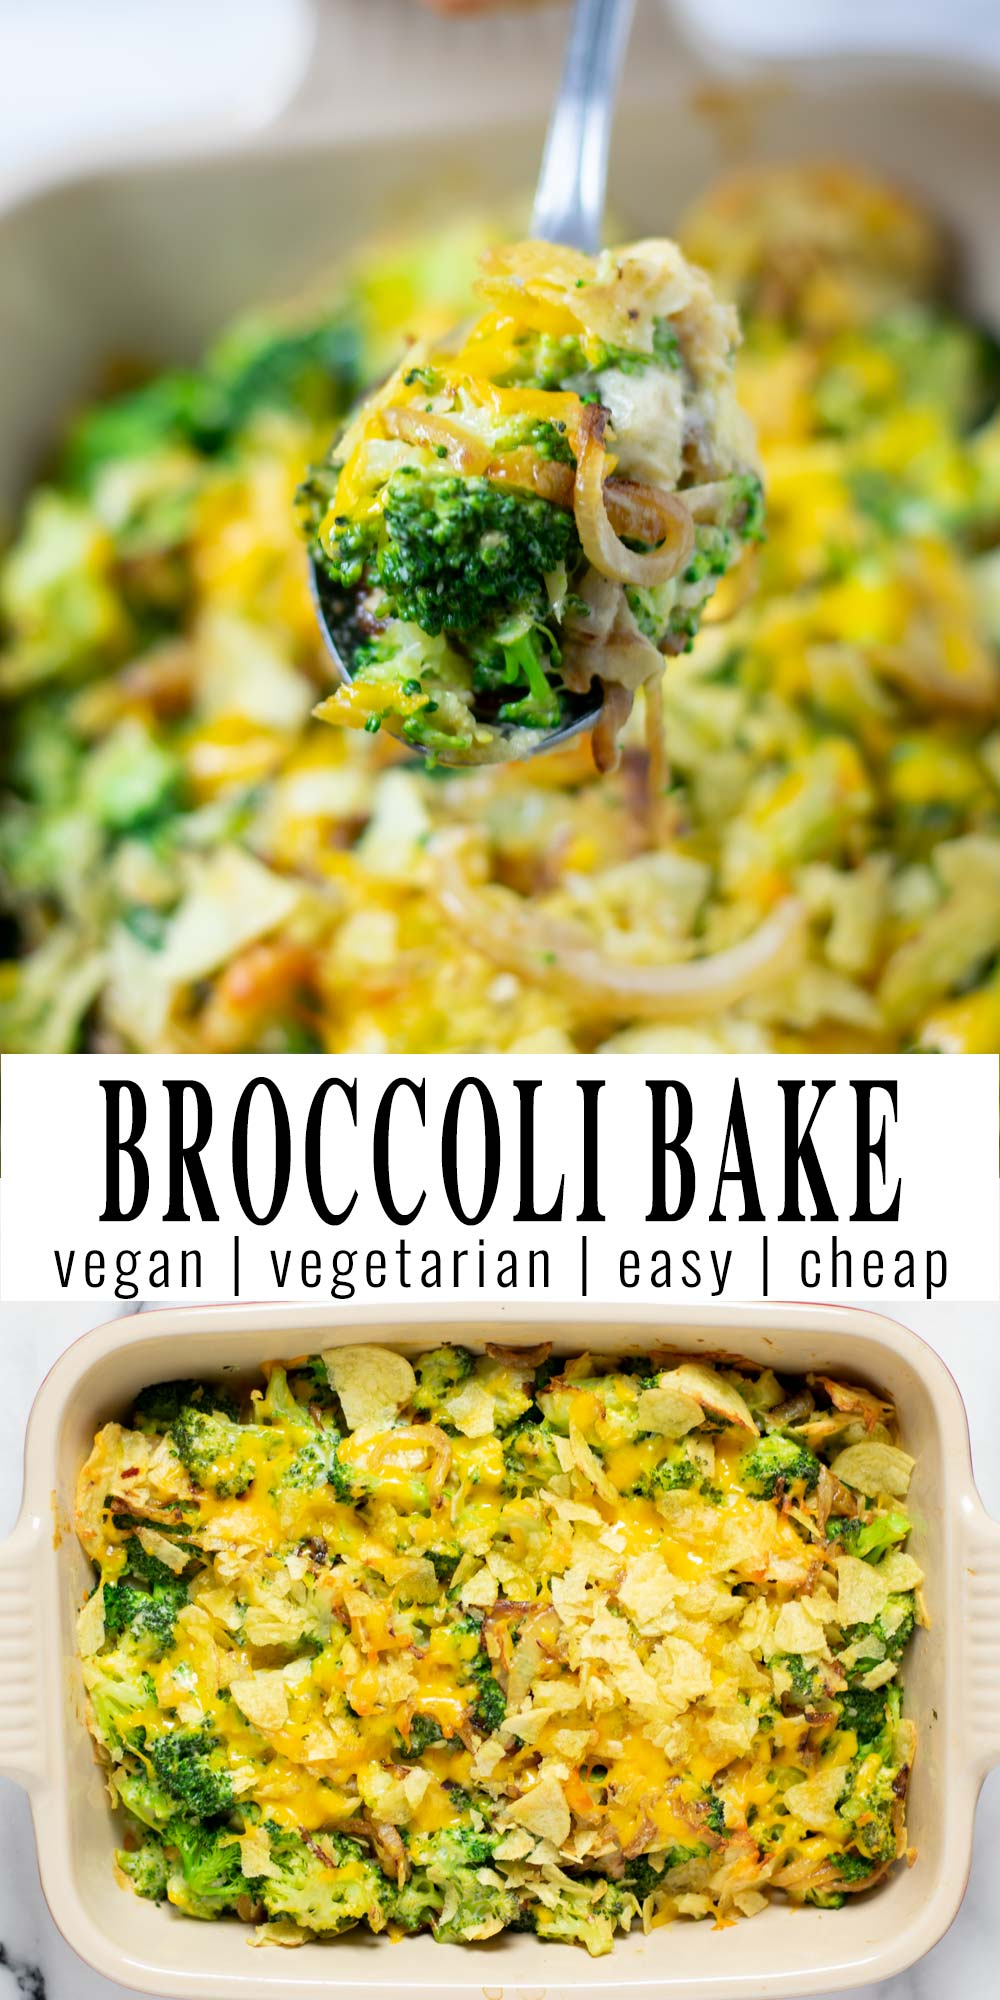 Collage of two pictures of the Broccoli Bake with recipe title text.